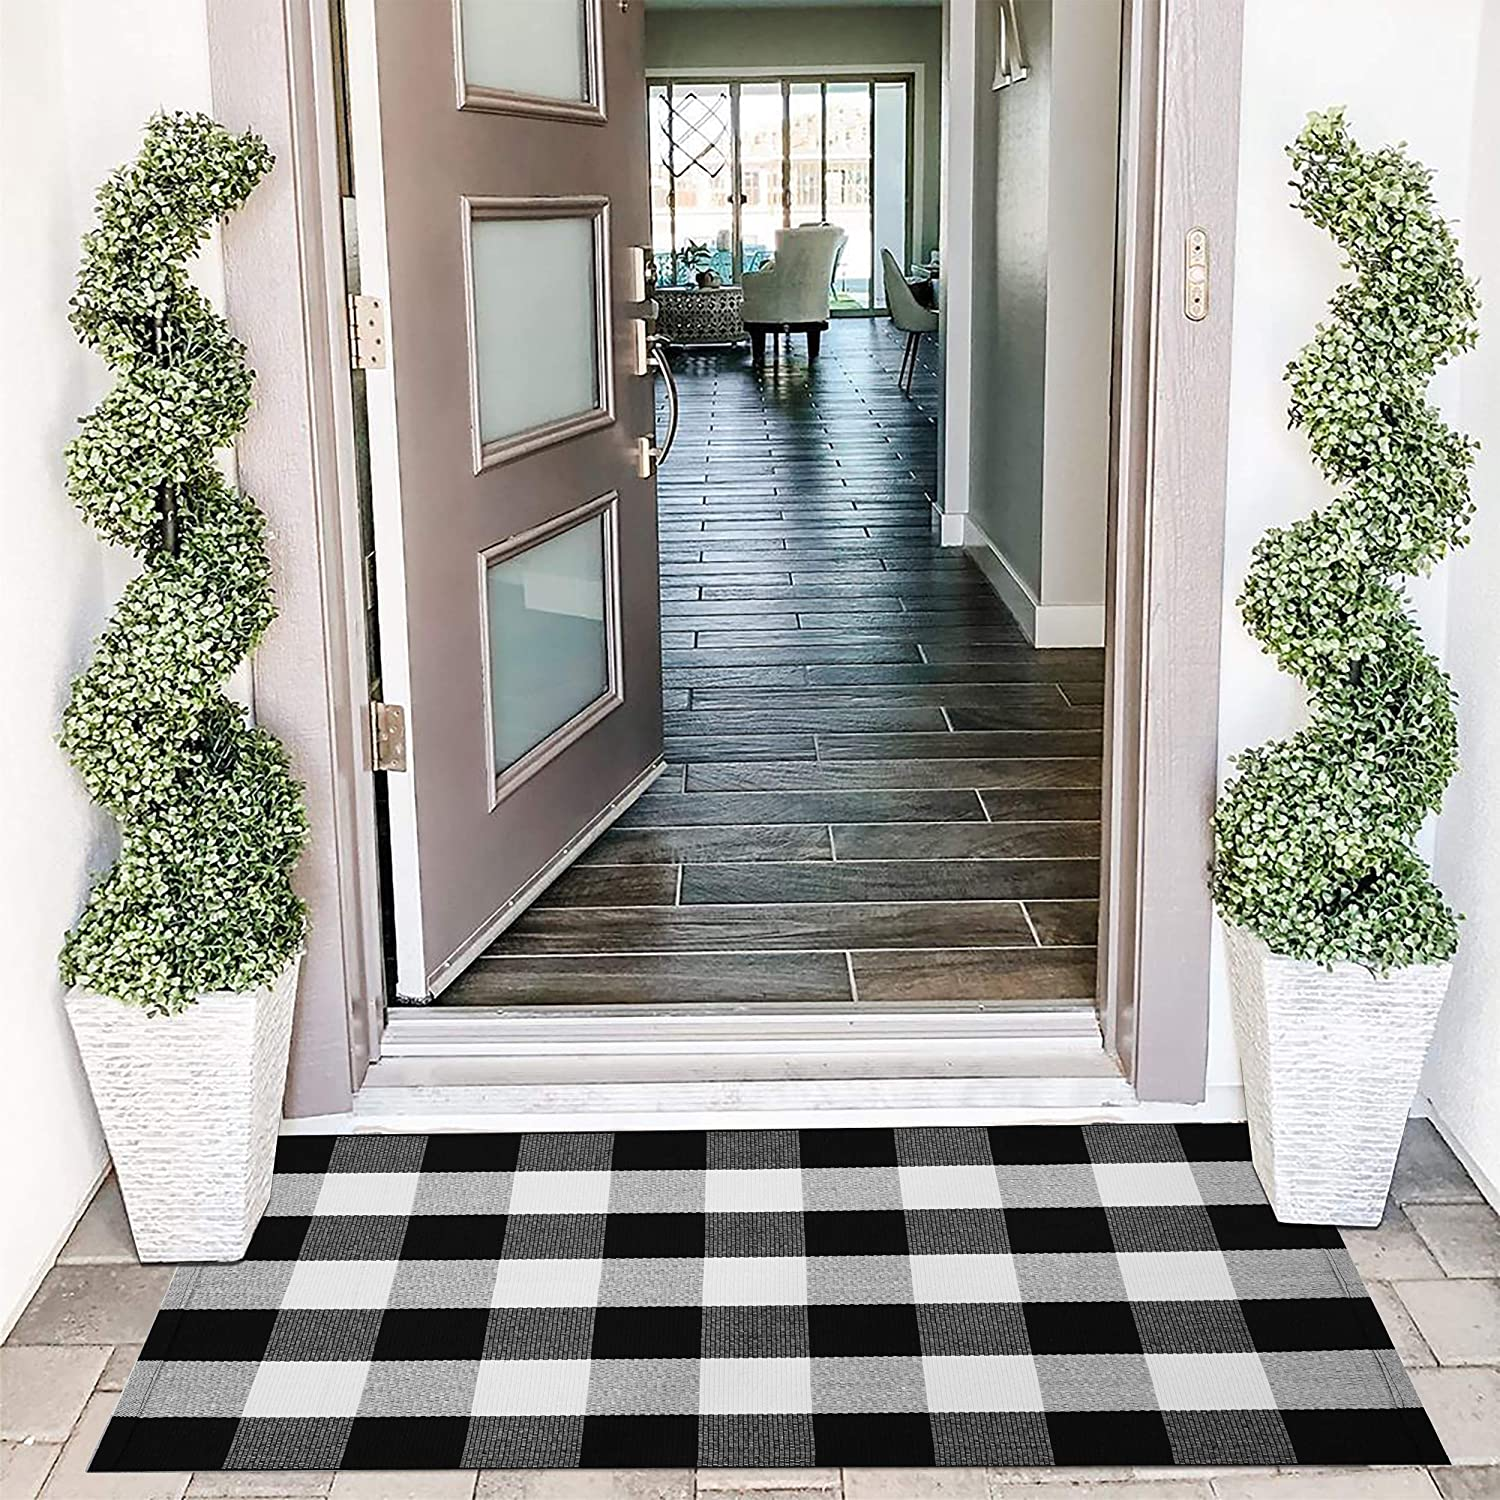 EARTHALL Buffalo Plaid Outdoor Rug 27.5 x 43 Inches Cotton Hand-Woven Checkered Front Door Mat, Outdoor Rugs for Layered Door Mats Porch/Front Porch/Farmhouse Black and White